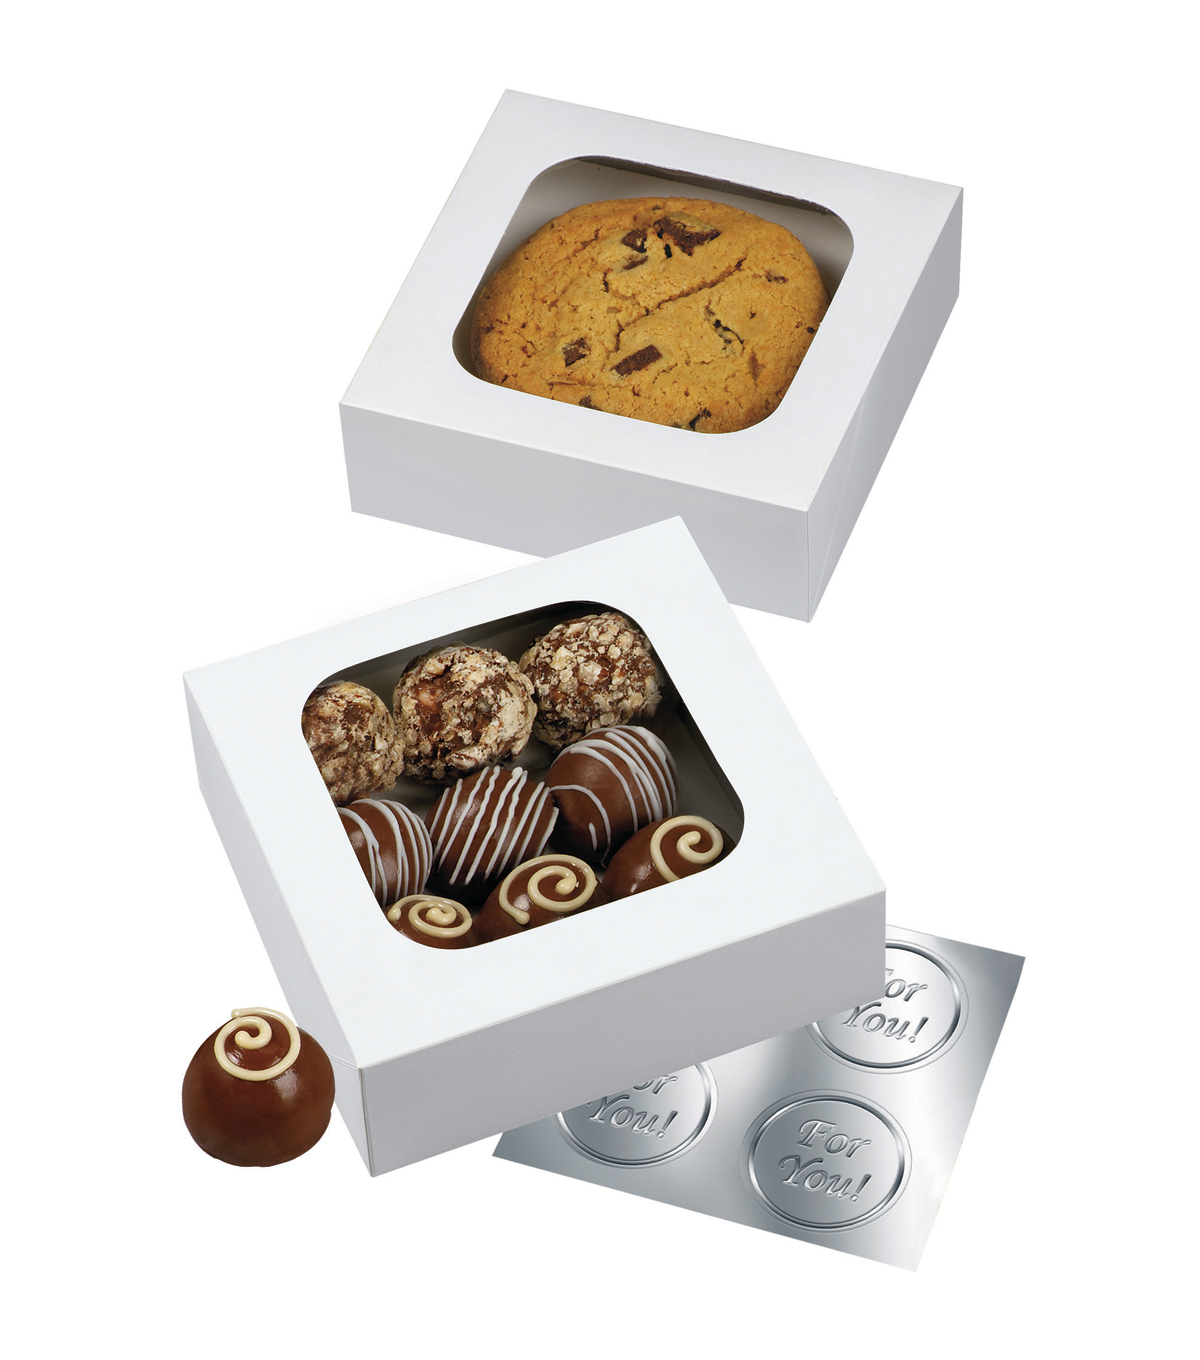 Wilton Window Treat Boxes 4.5\u0022X4.5\u0022X1.5\u0022 3/Pkg-White